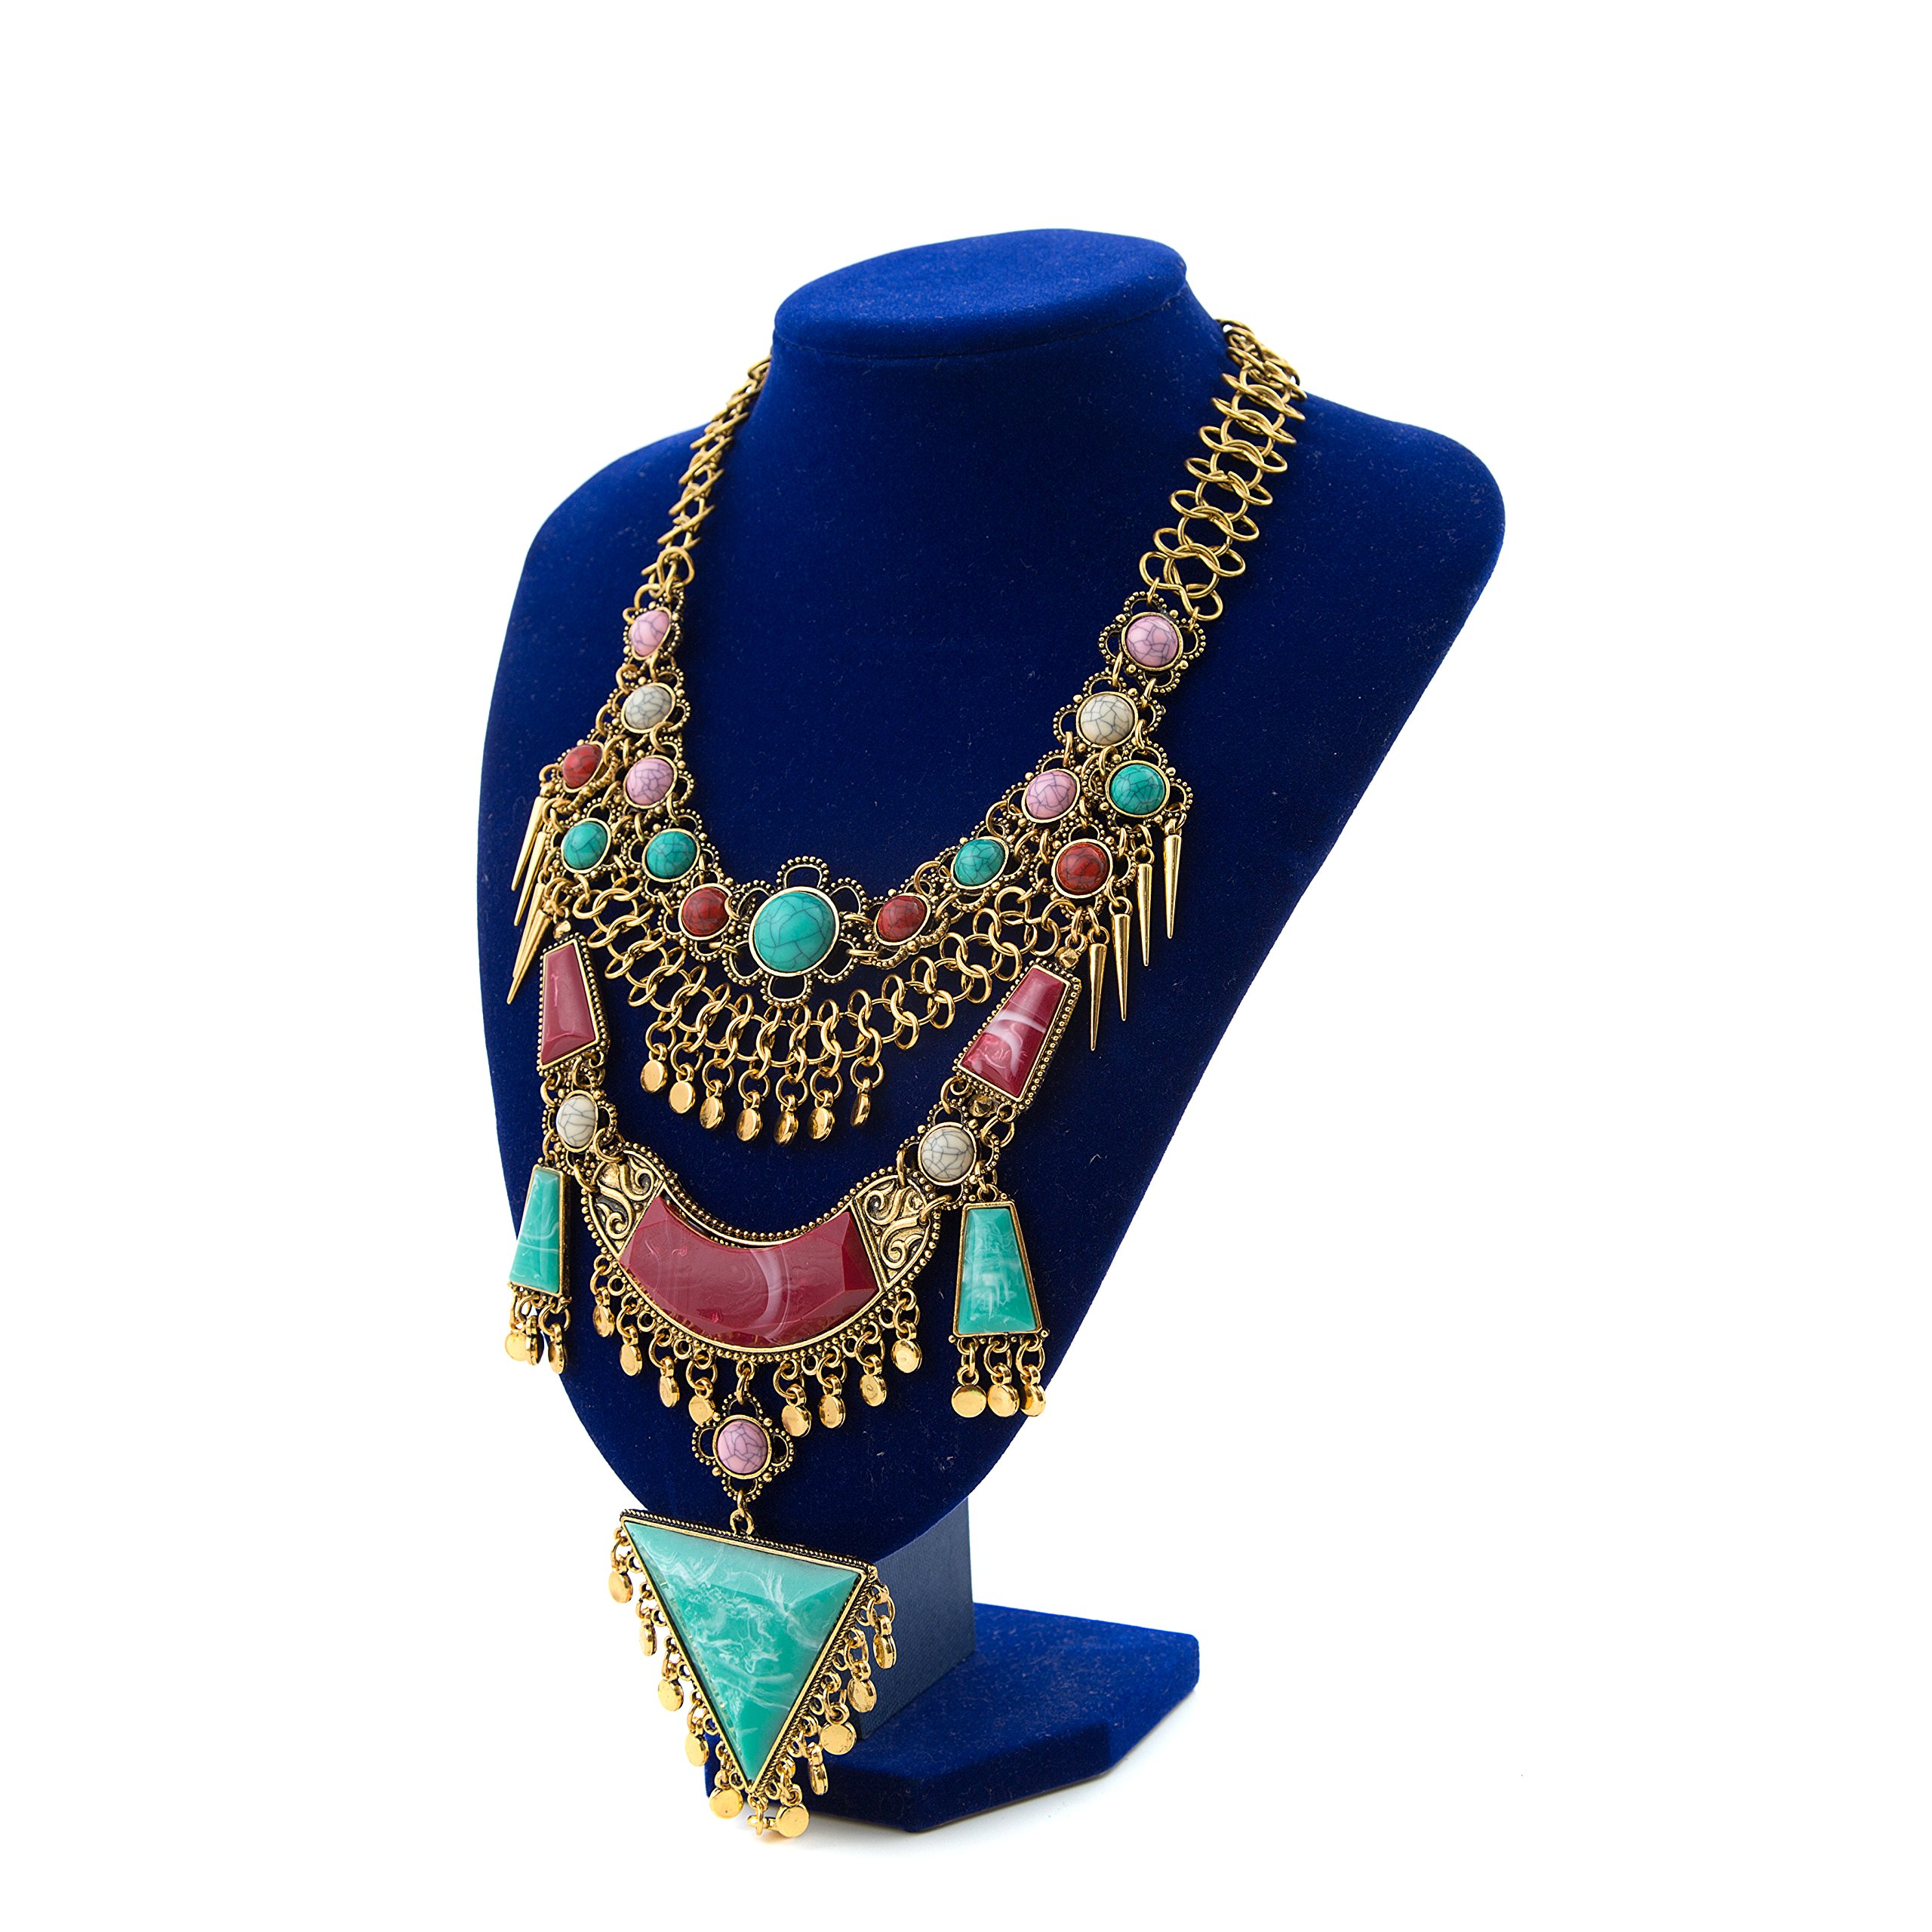 Miraculous Garden Womens Vintage Alloy Silver/Gold Long Boho Bohemian Necklace Ethnic Tribal Boho Necklace Geometry Red Turquoise Beads Statement Necklace (Antique Gold)